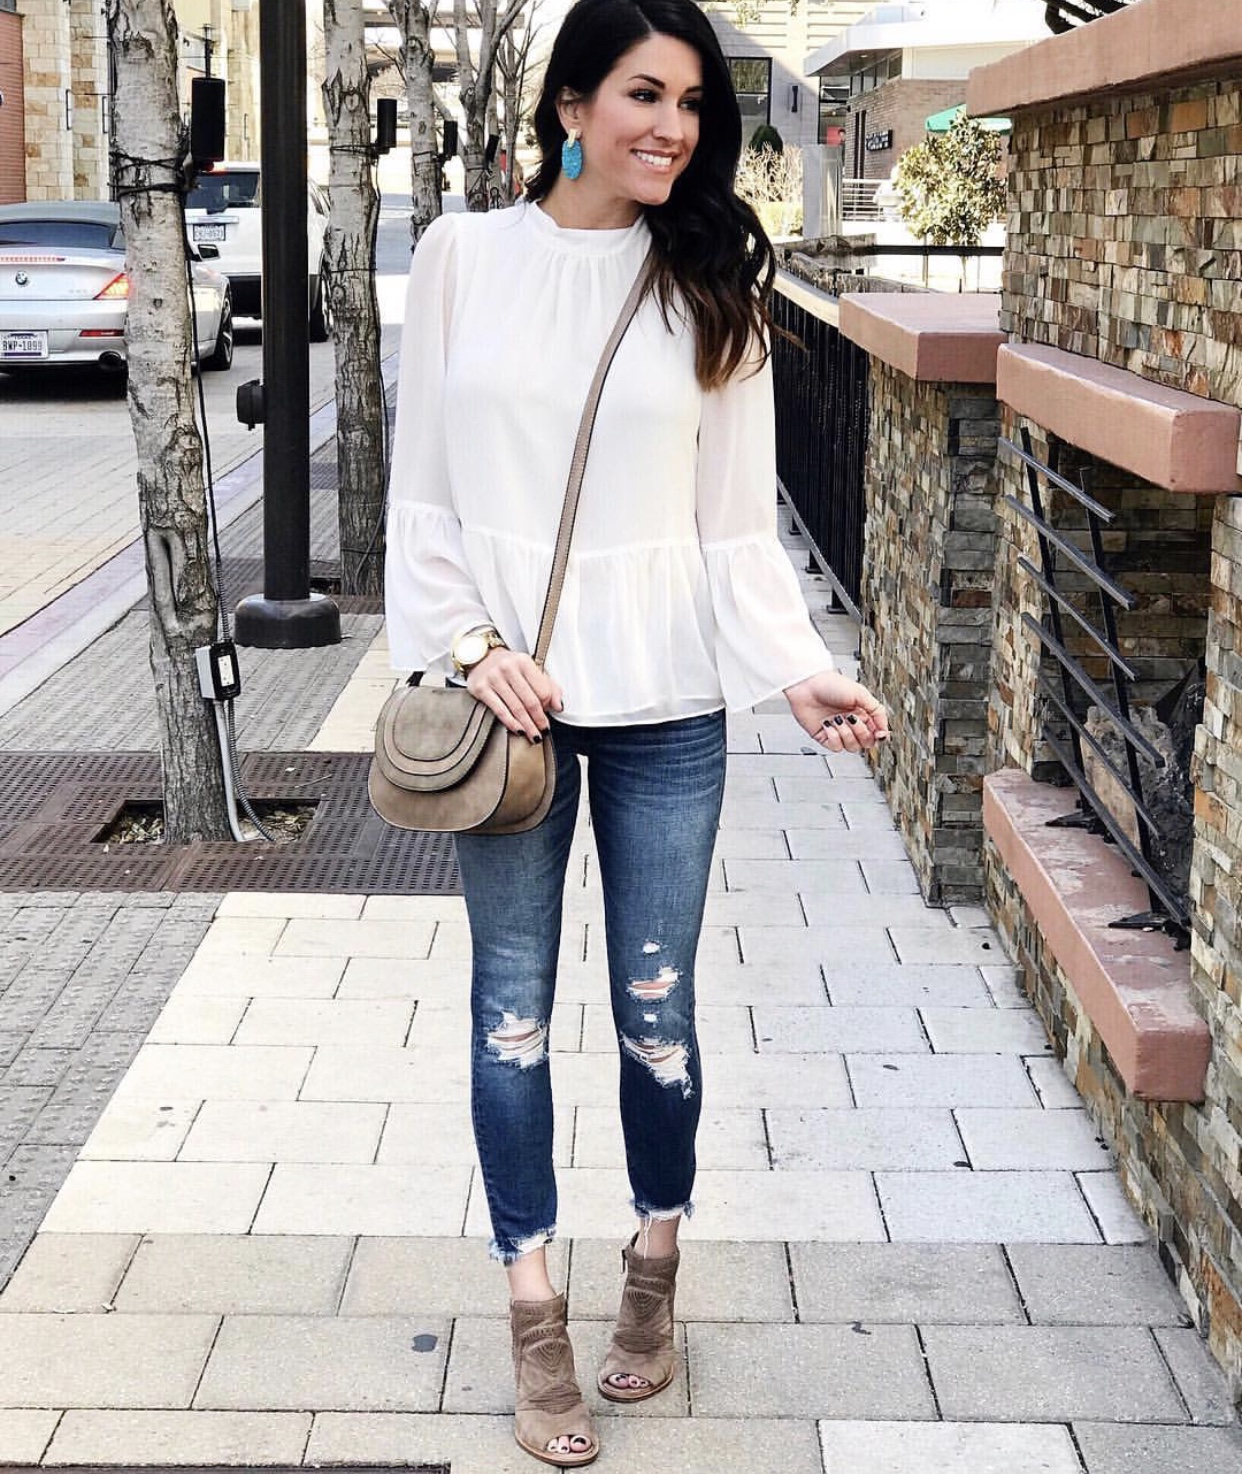 White blouse, skinny jeans, booties